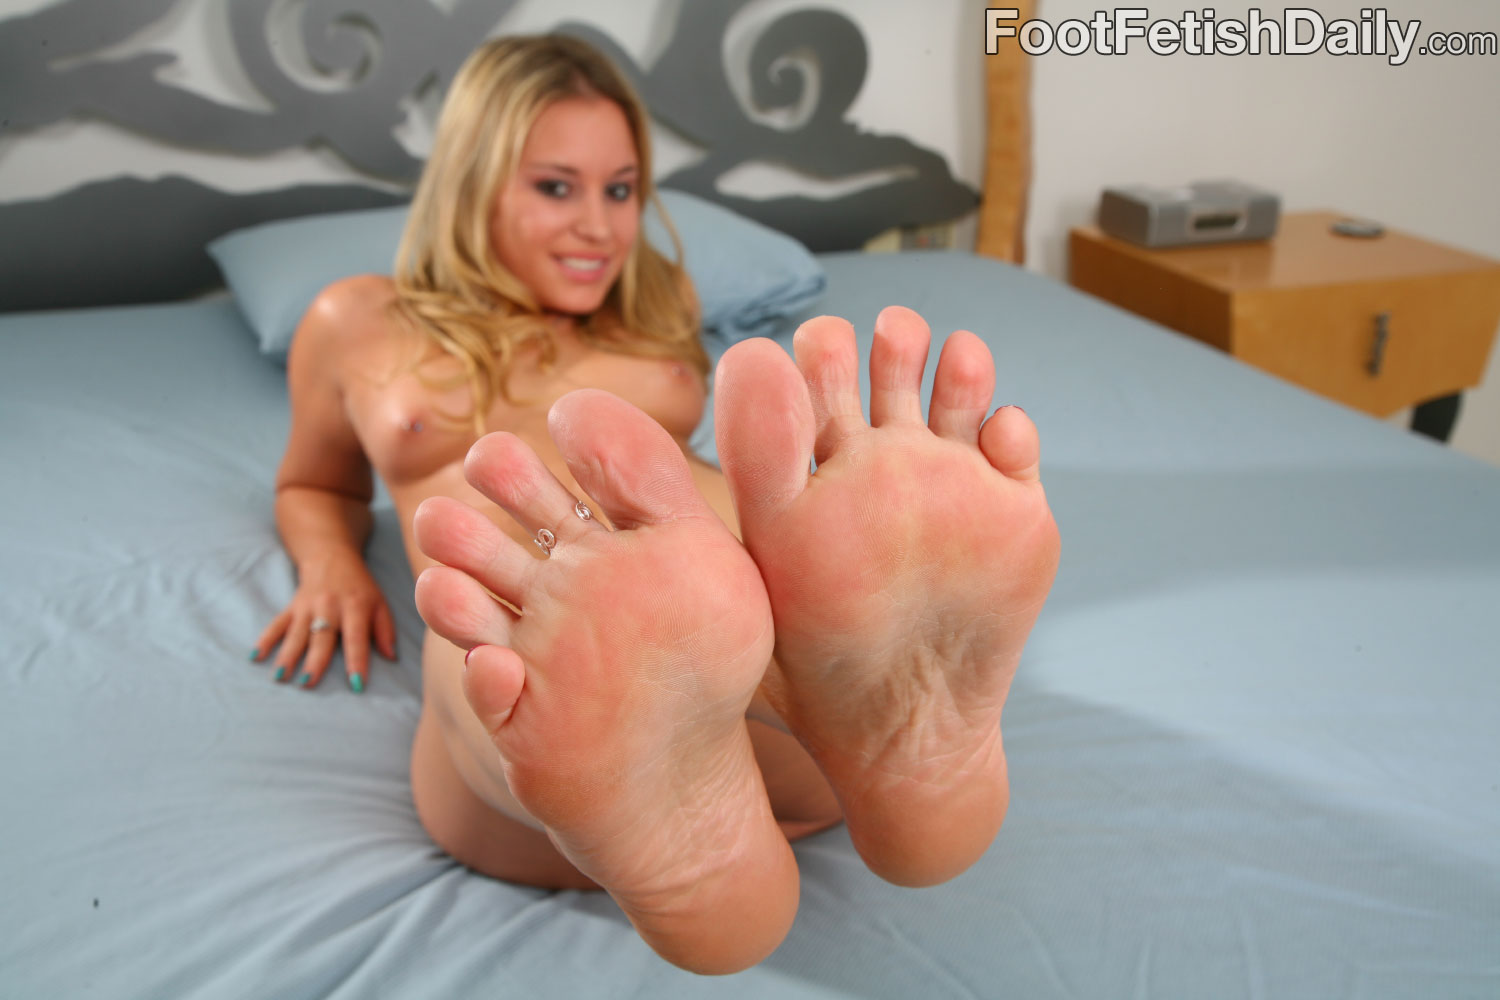 The valuable girls with male feet fetish join. All